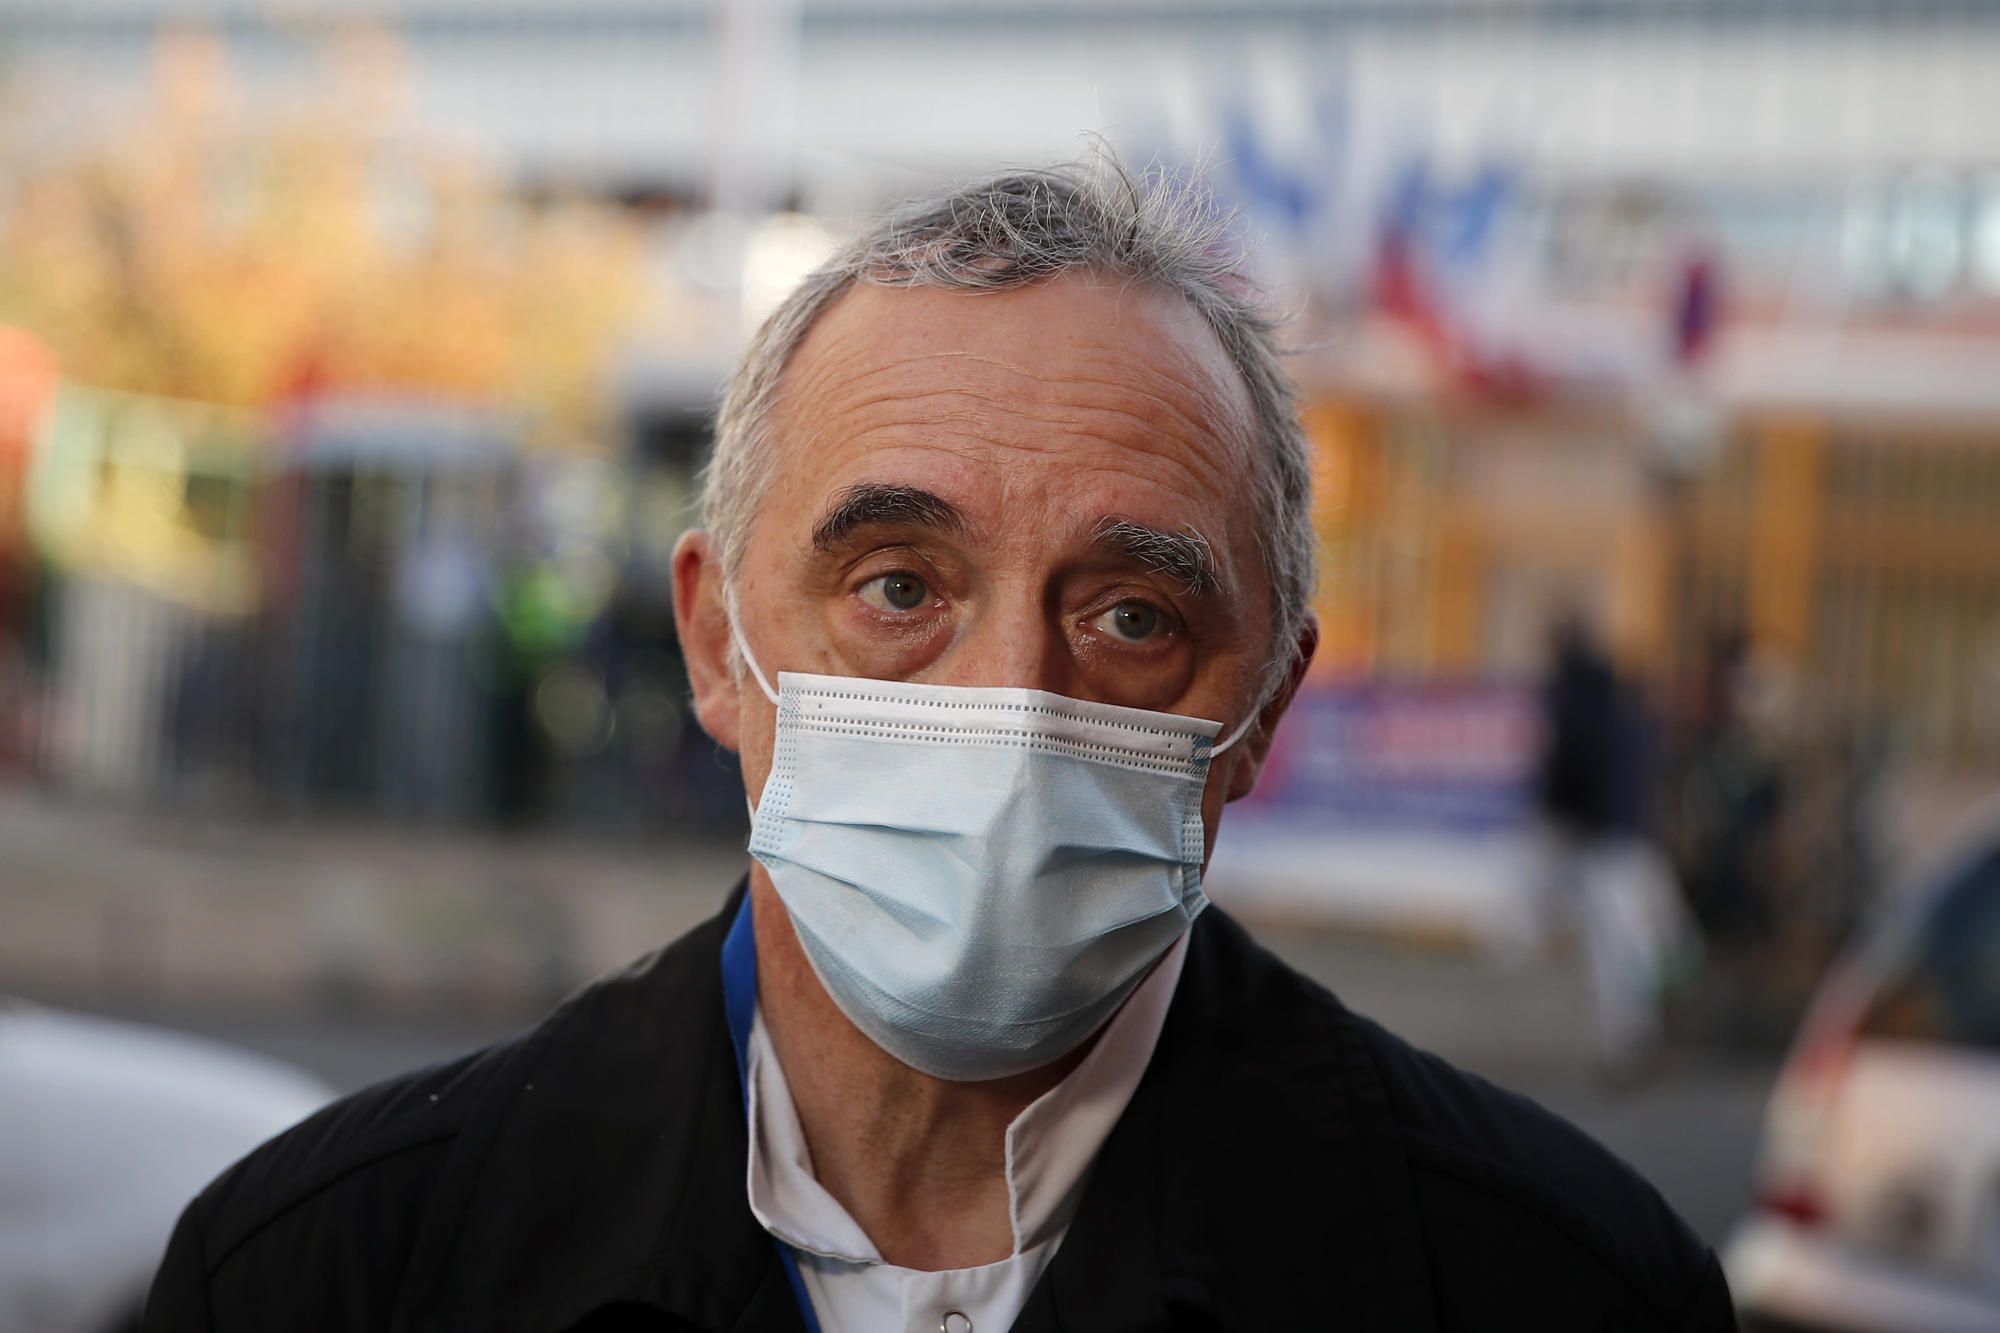 Amid virus surge, Paris hospitals begin to see signs of hope